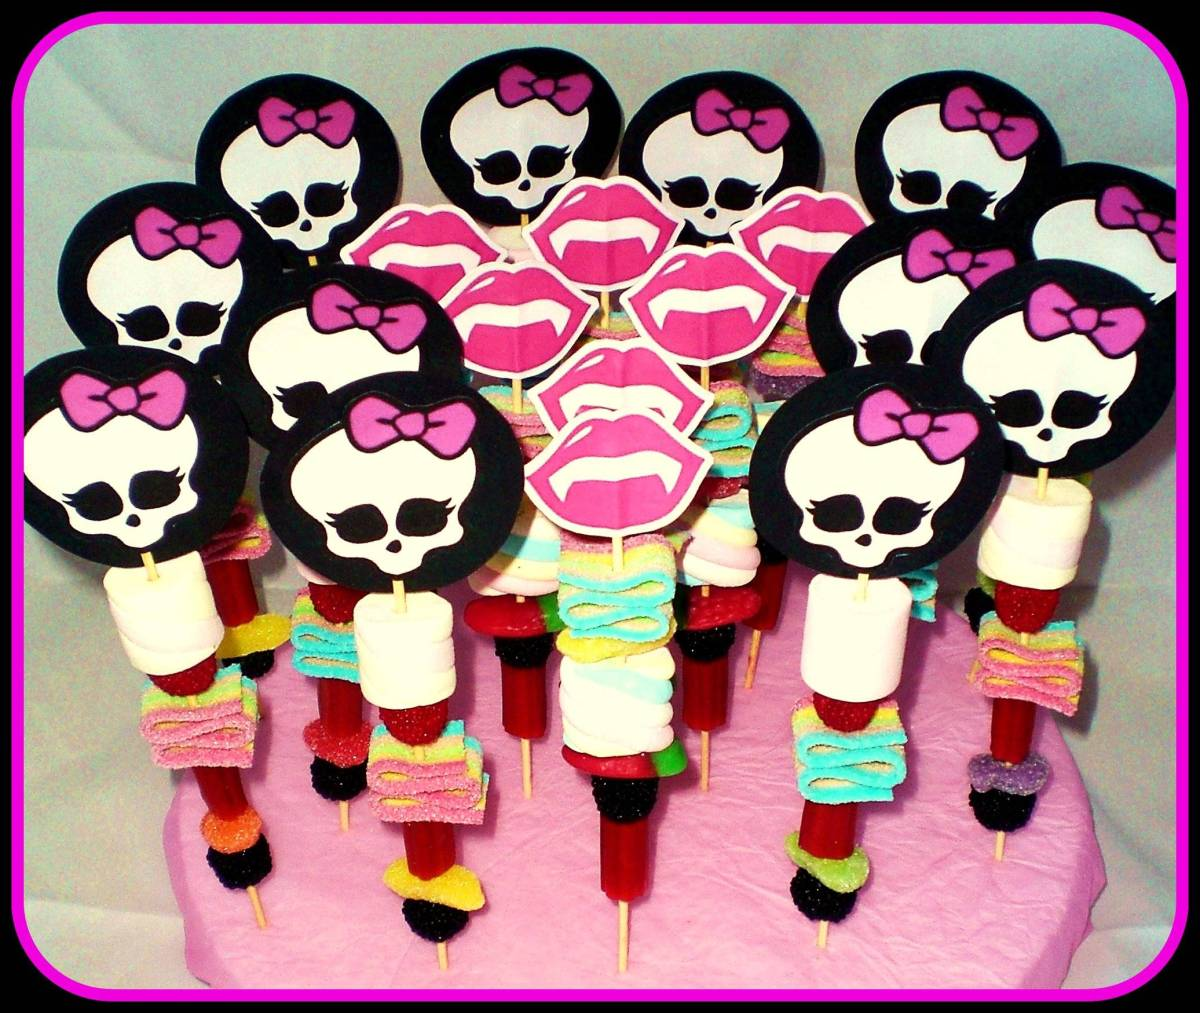 Como hacer brochetas de chuches monstruosas para una fiesta Monter High